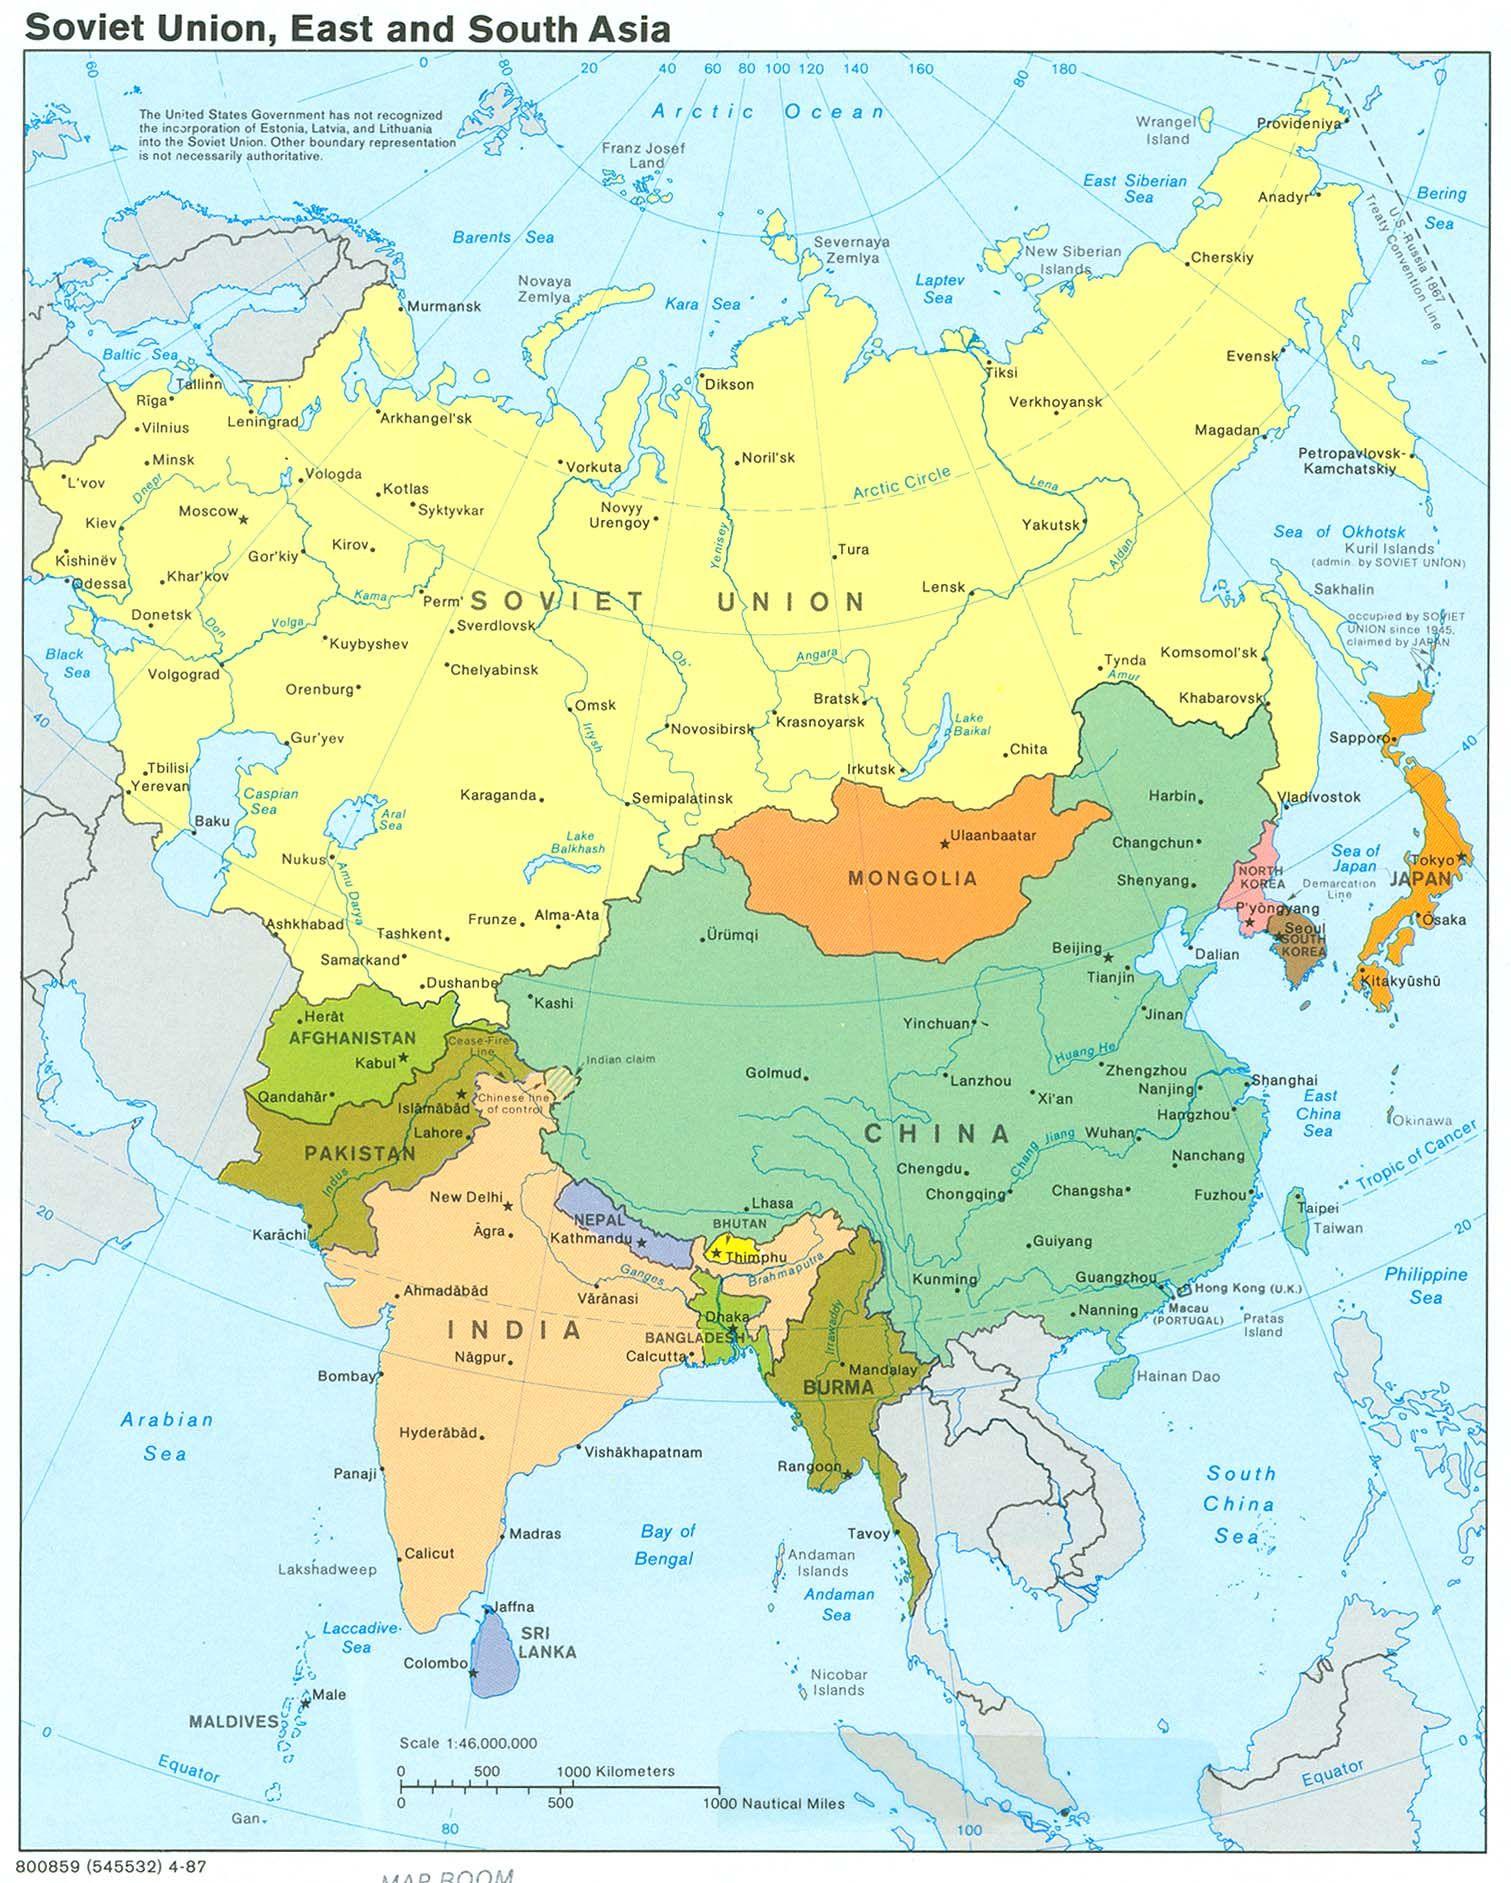 Soviet Union East and South Asia World of Maps Pinterest